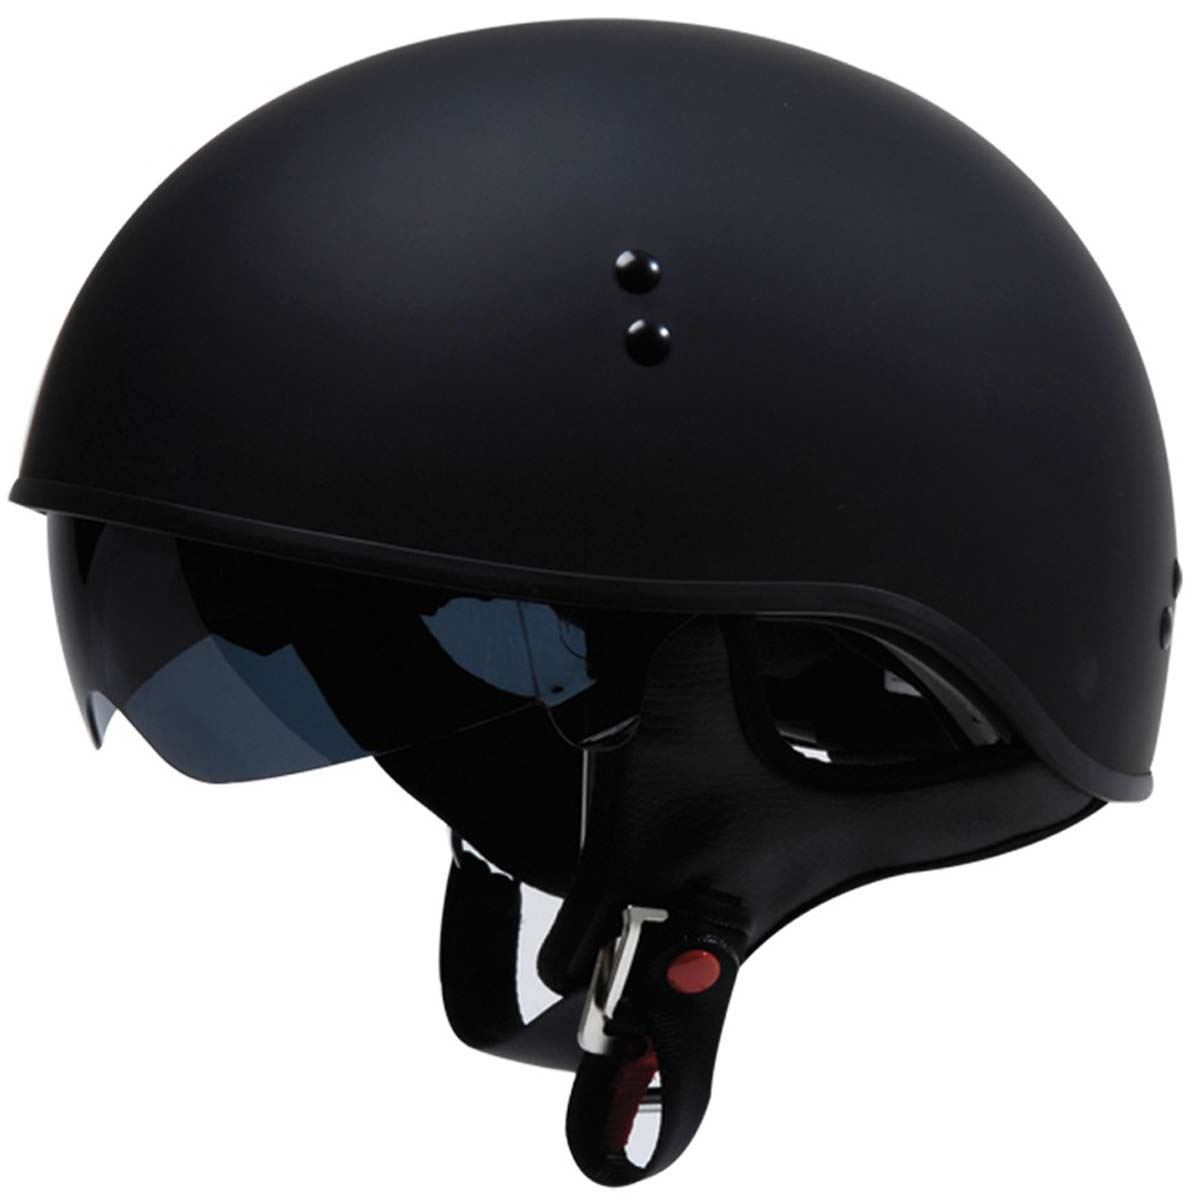 e0014483 Torc T55 Half Shell Motorcycle Helmets Inner Smoke Visor Solids/Graphic  Colors. Click Thumbnails to Enlarge